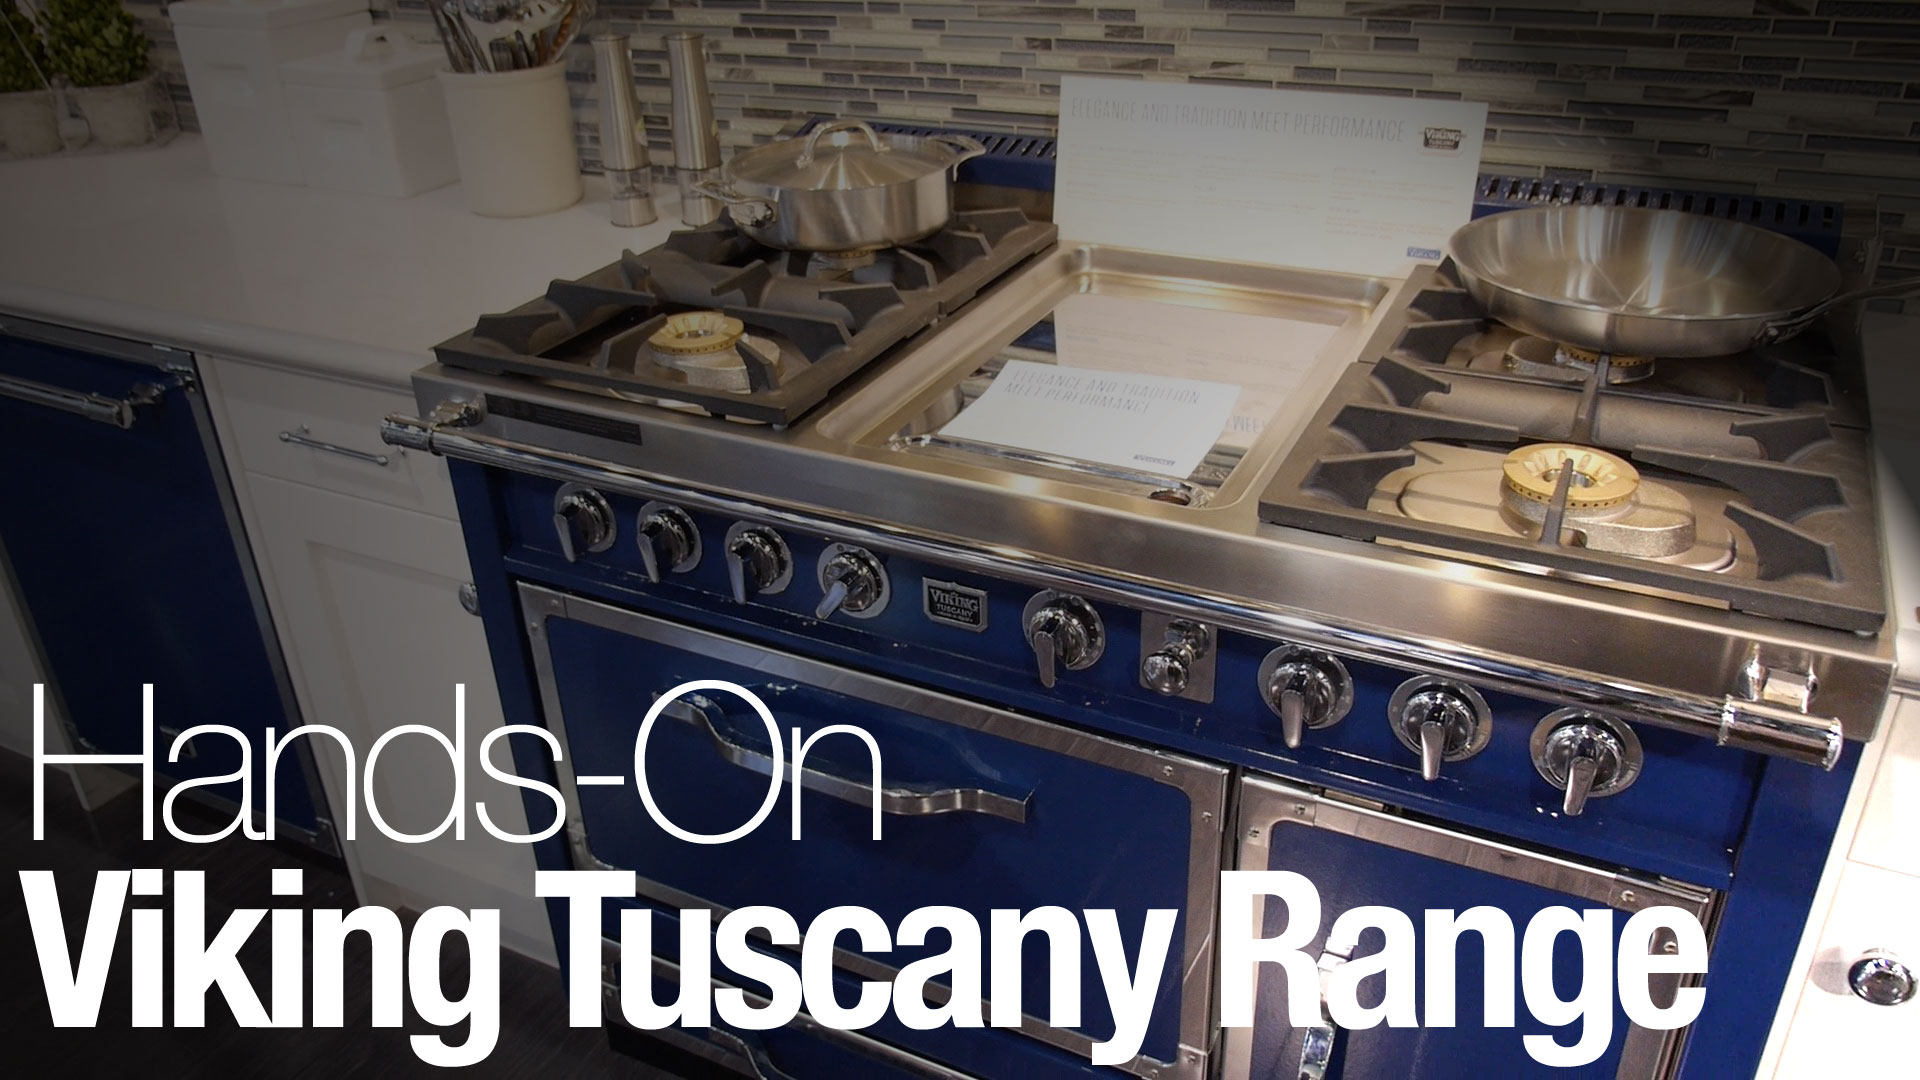 Video Hands On With The Viking Tuscany Range Reviewed Com Ovens